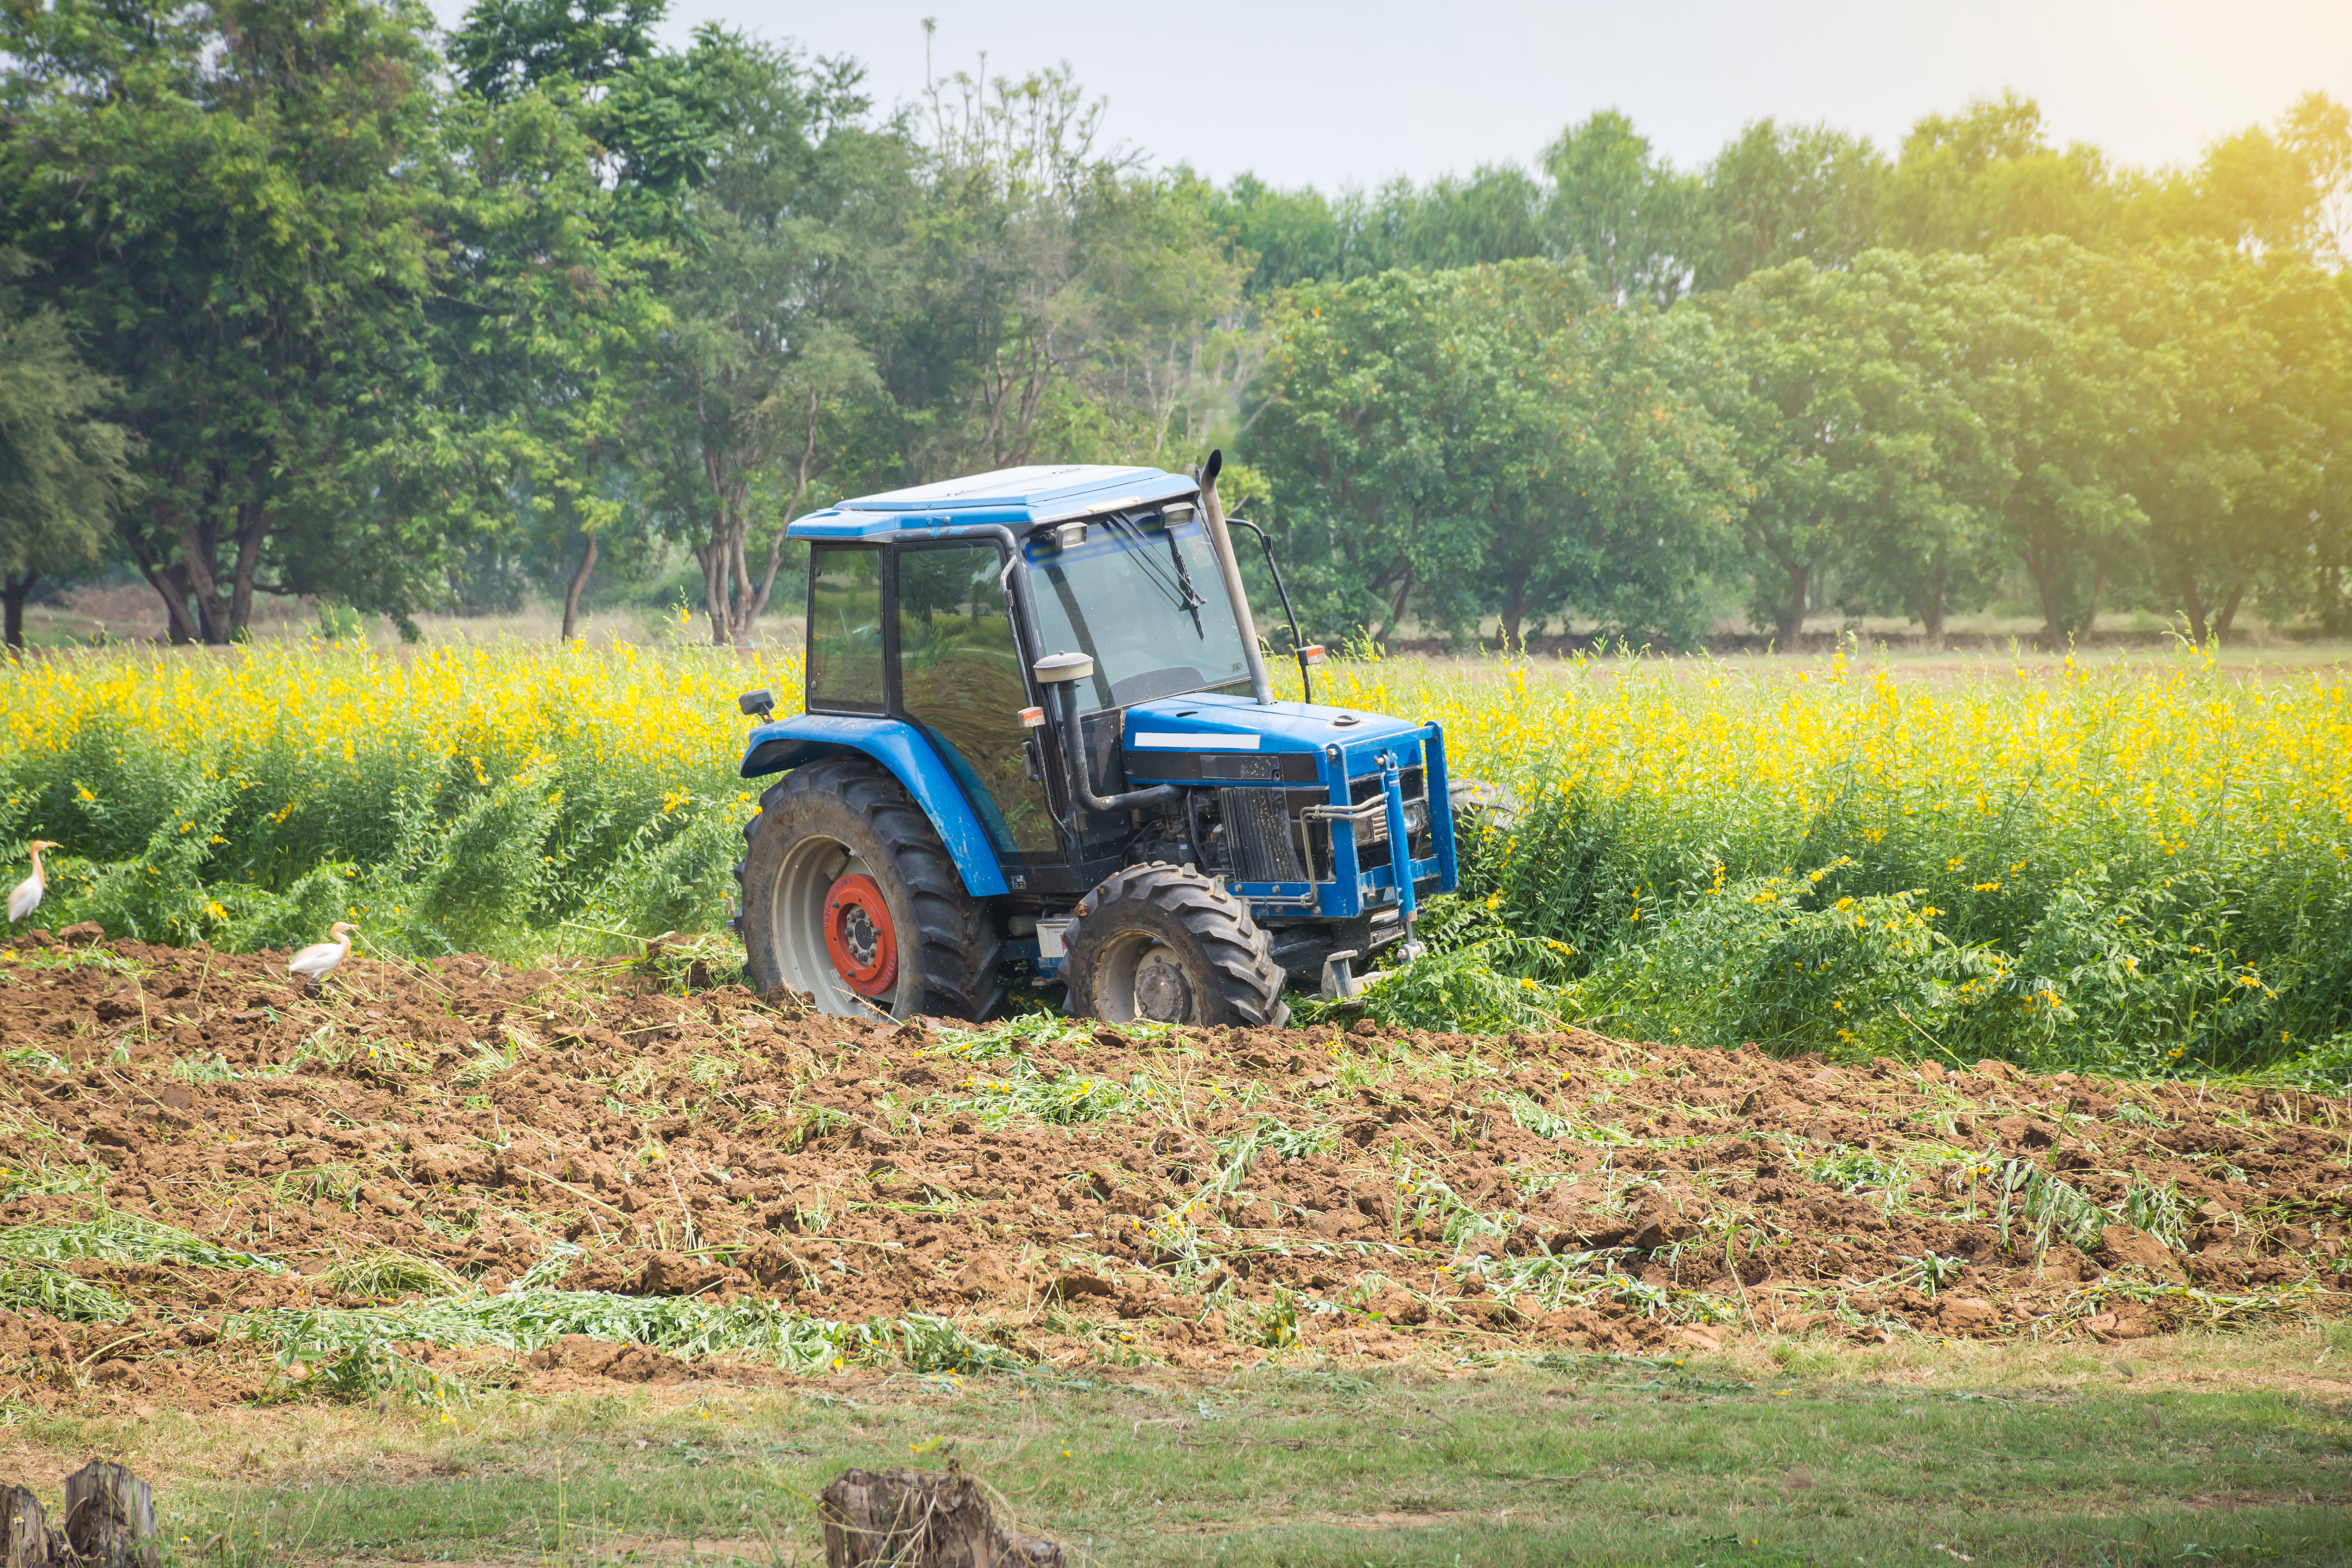 Tractor plowing under a field of crops